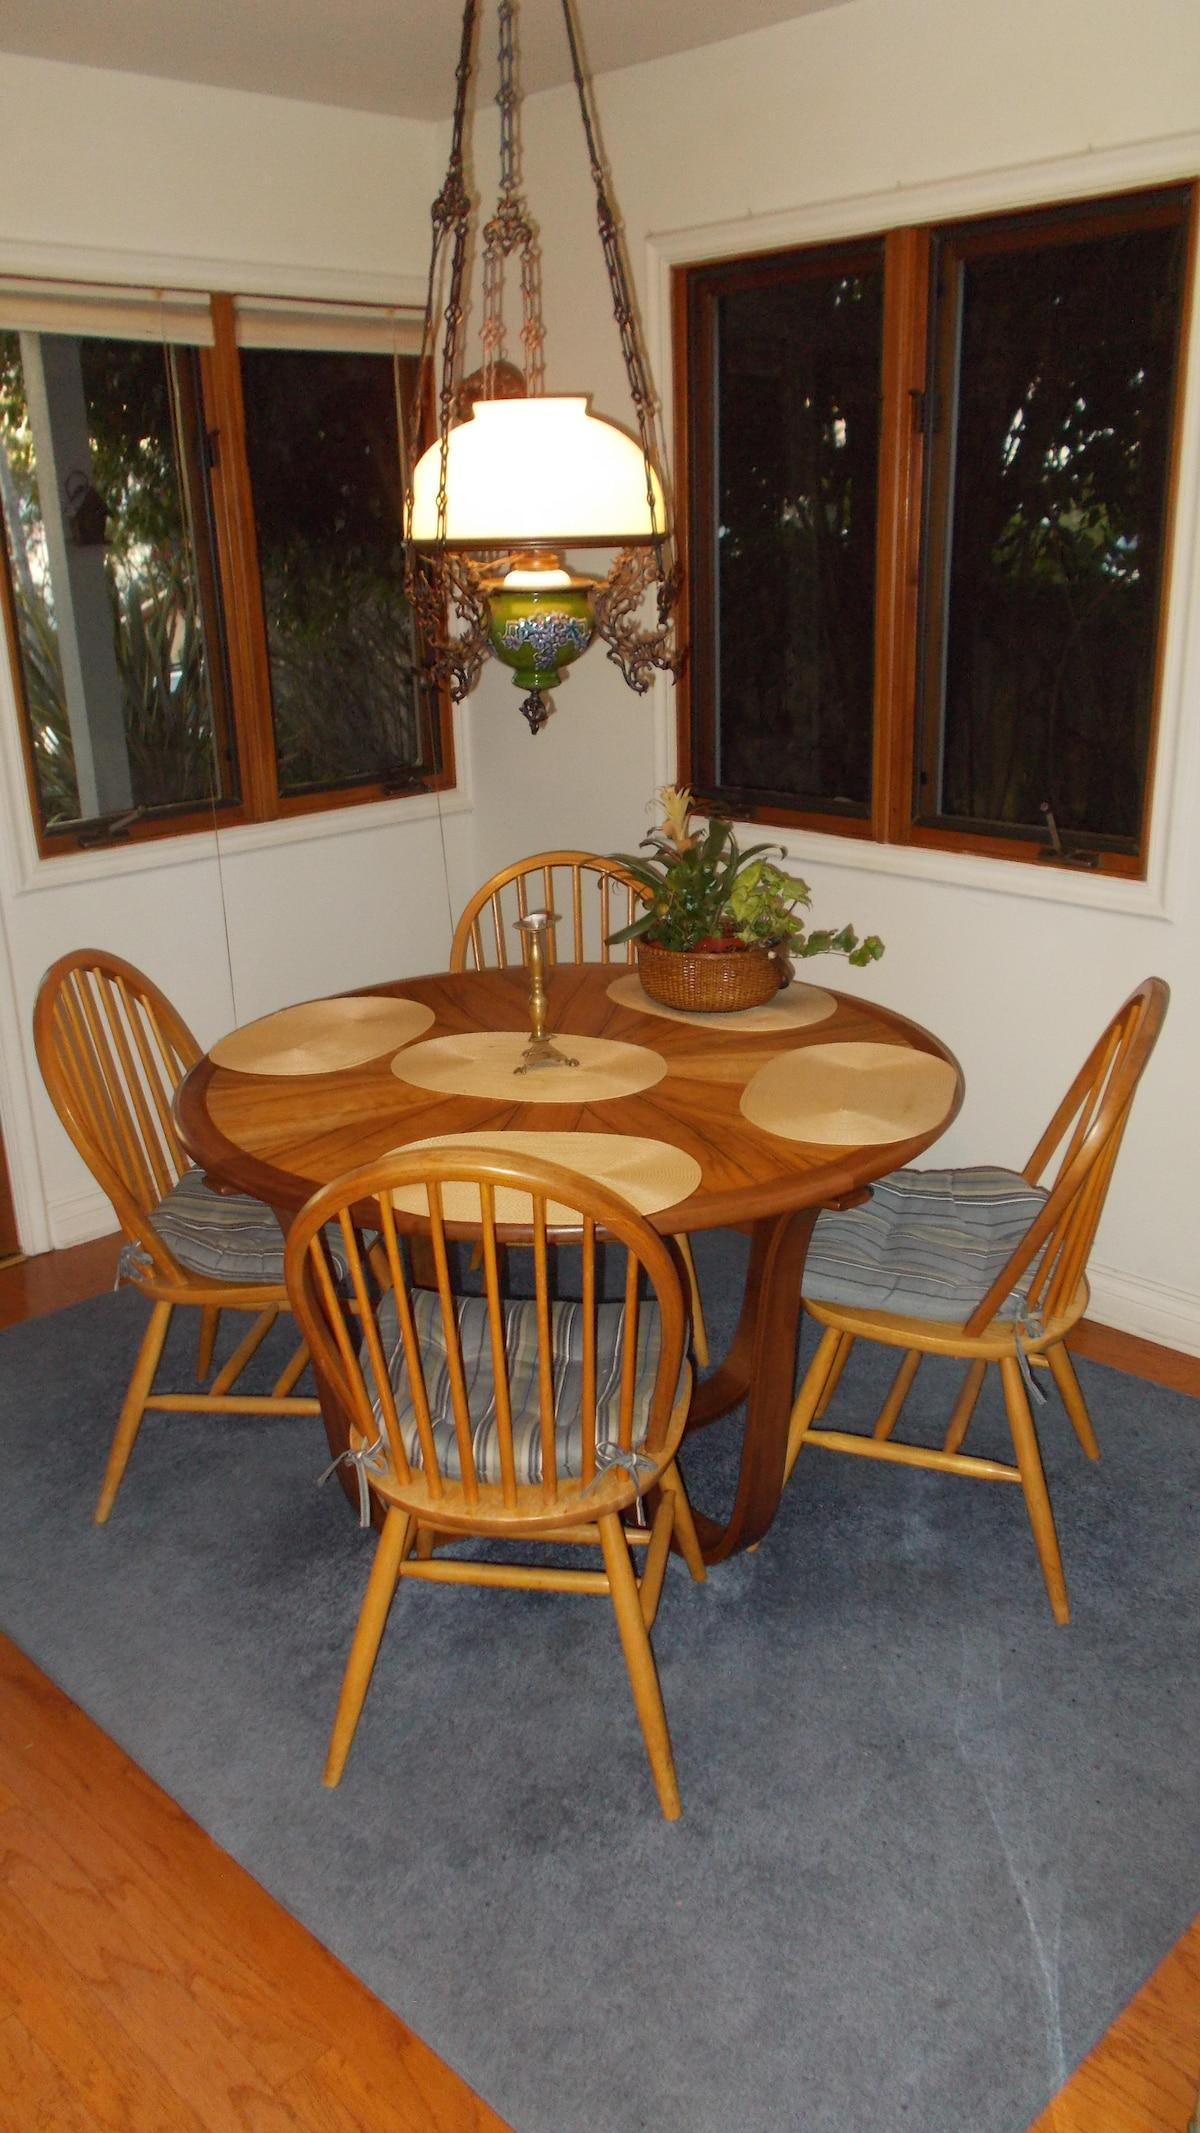 Enjoy a hot breakfast upstairs in the dining area while taking in the morning scenery outside.